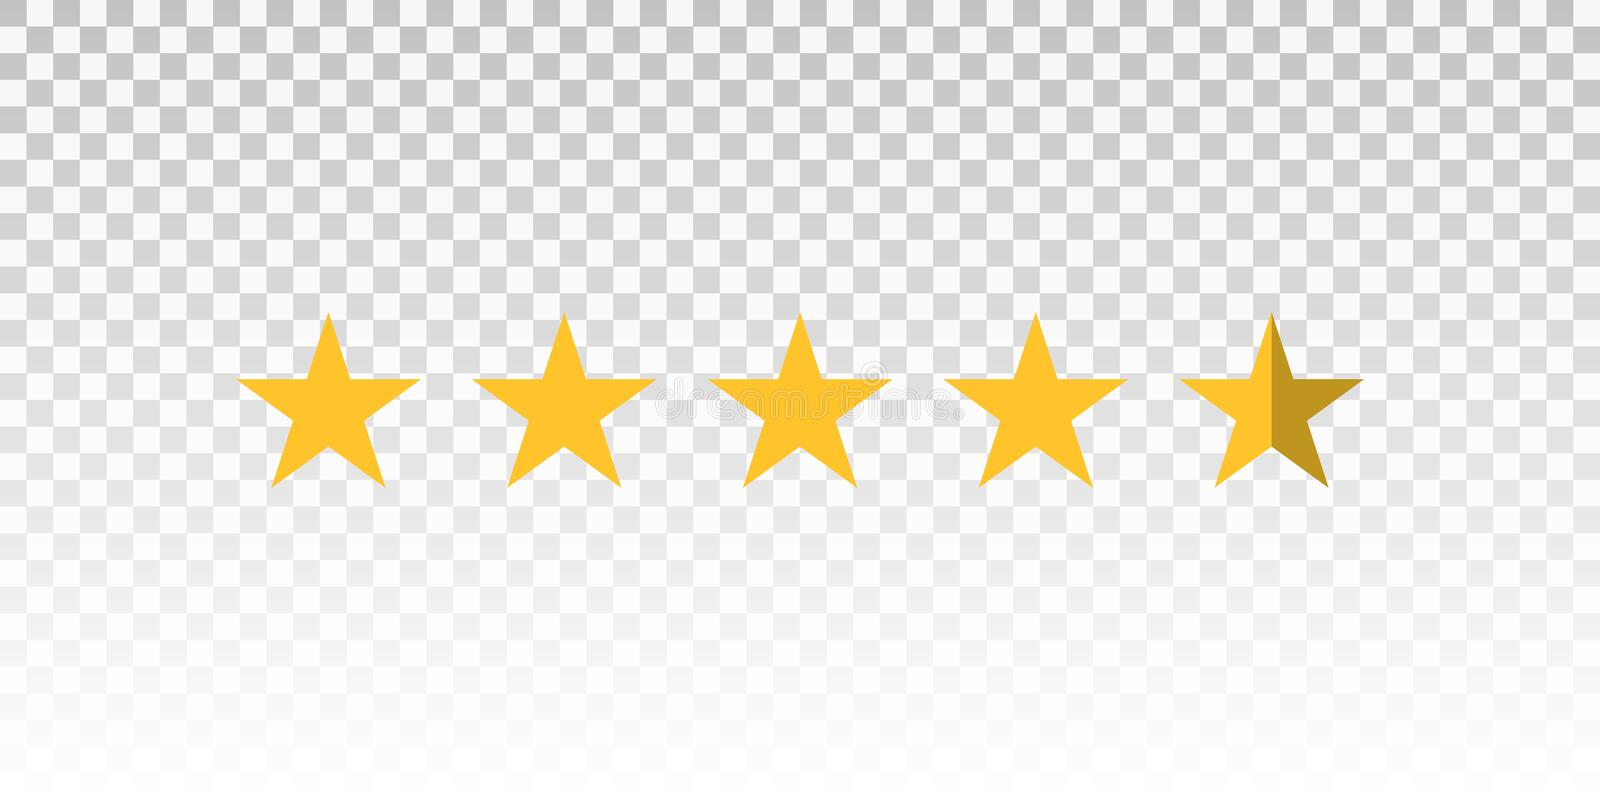 Vector Yellow Star Rating Bar Isolated On Transparent Background